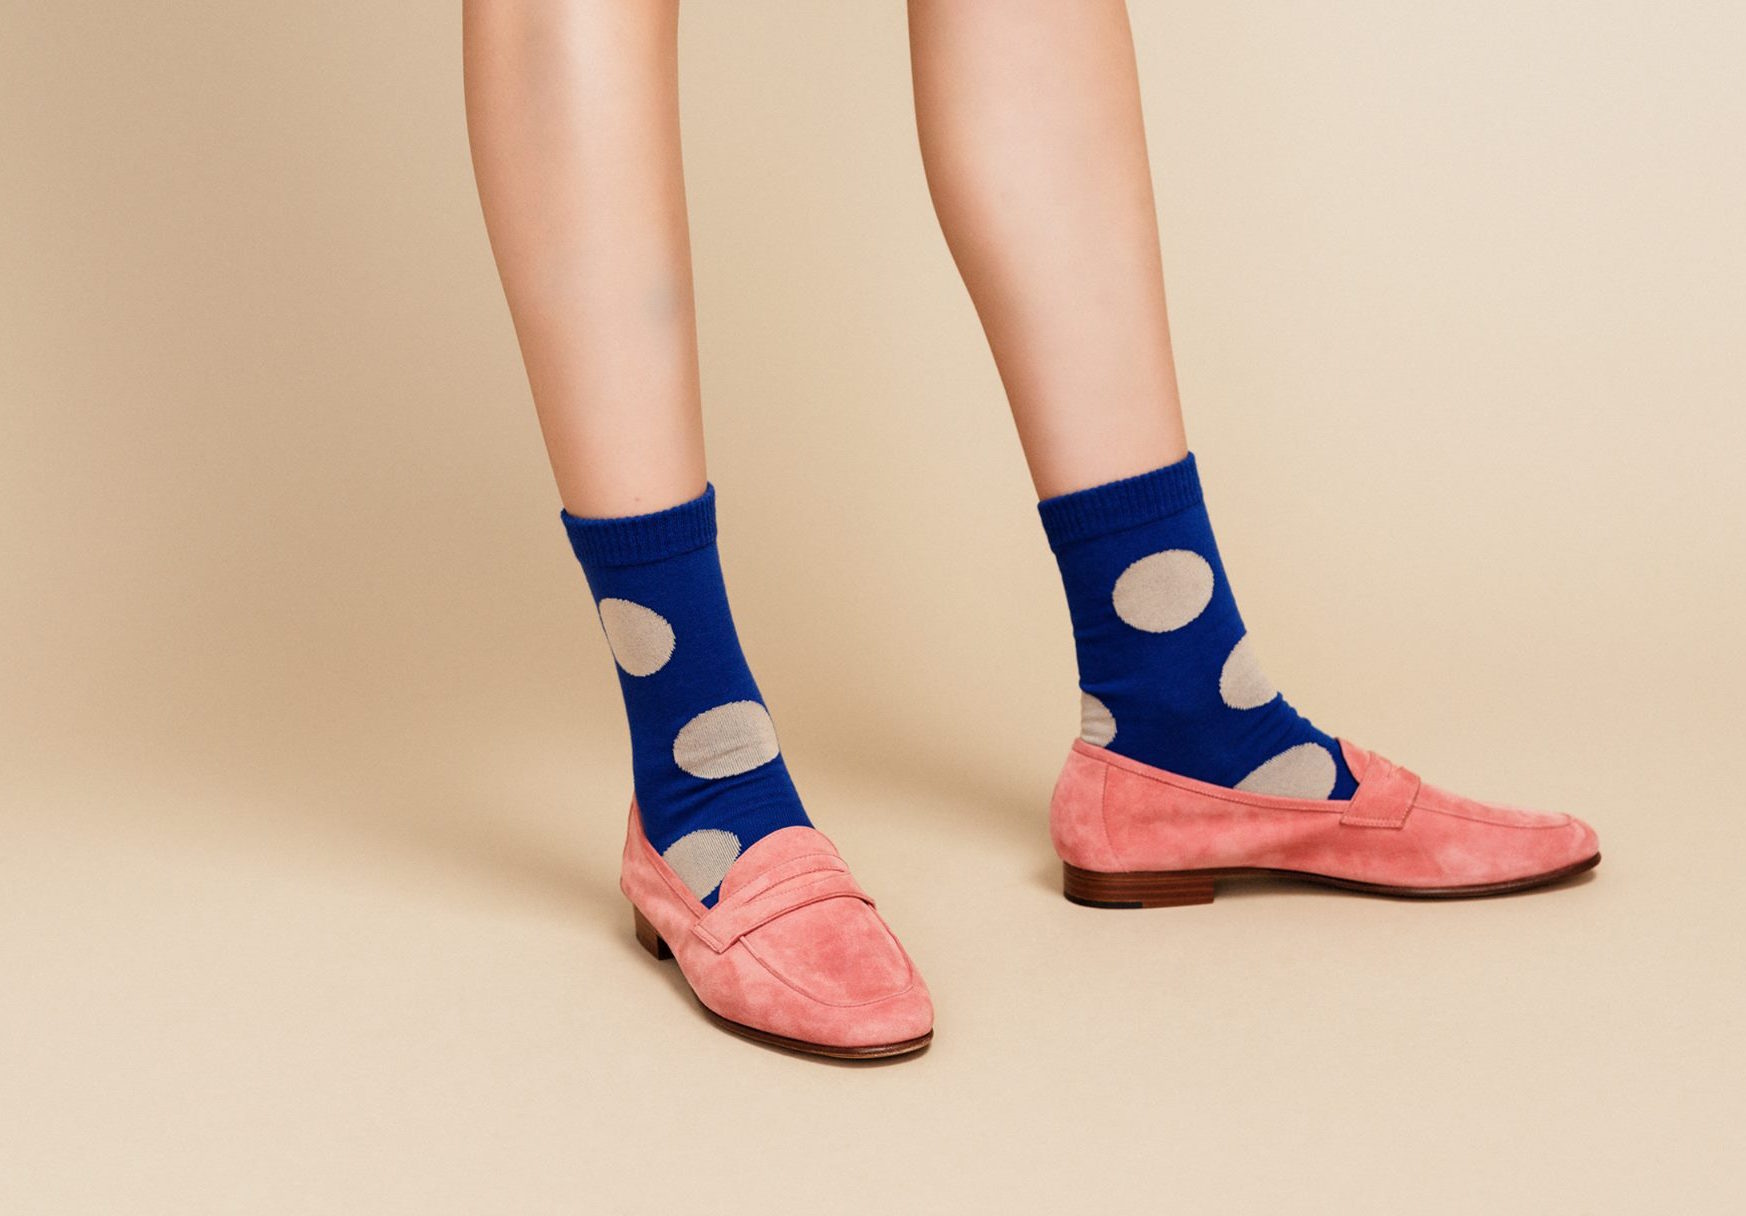 A model wearing polka dot socks and pink loafers